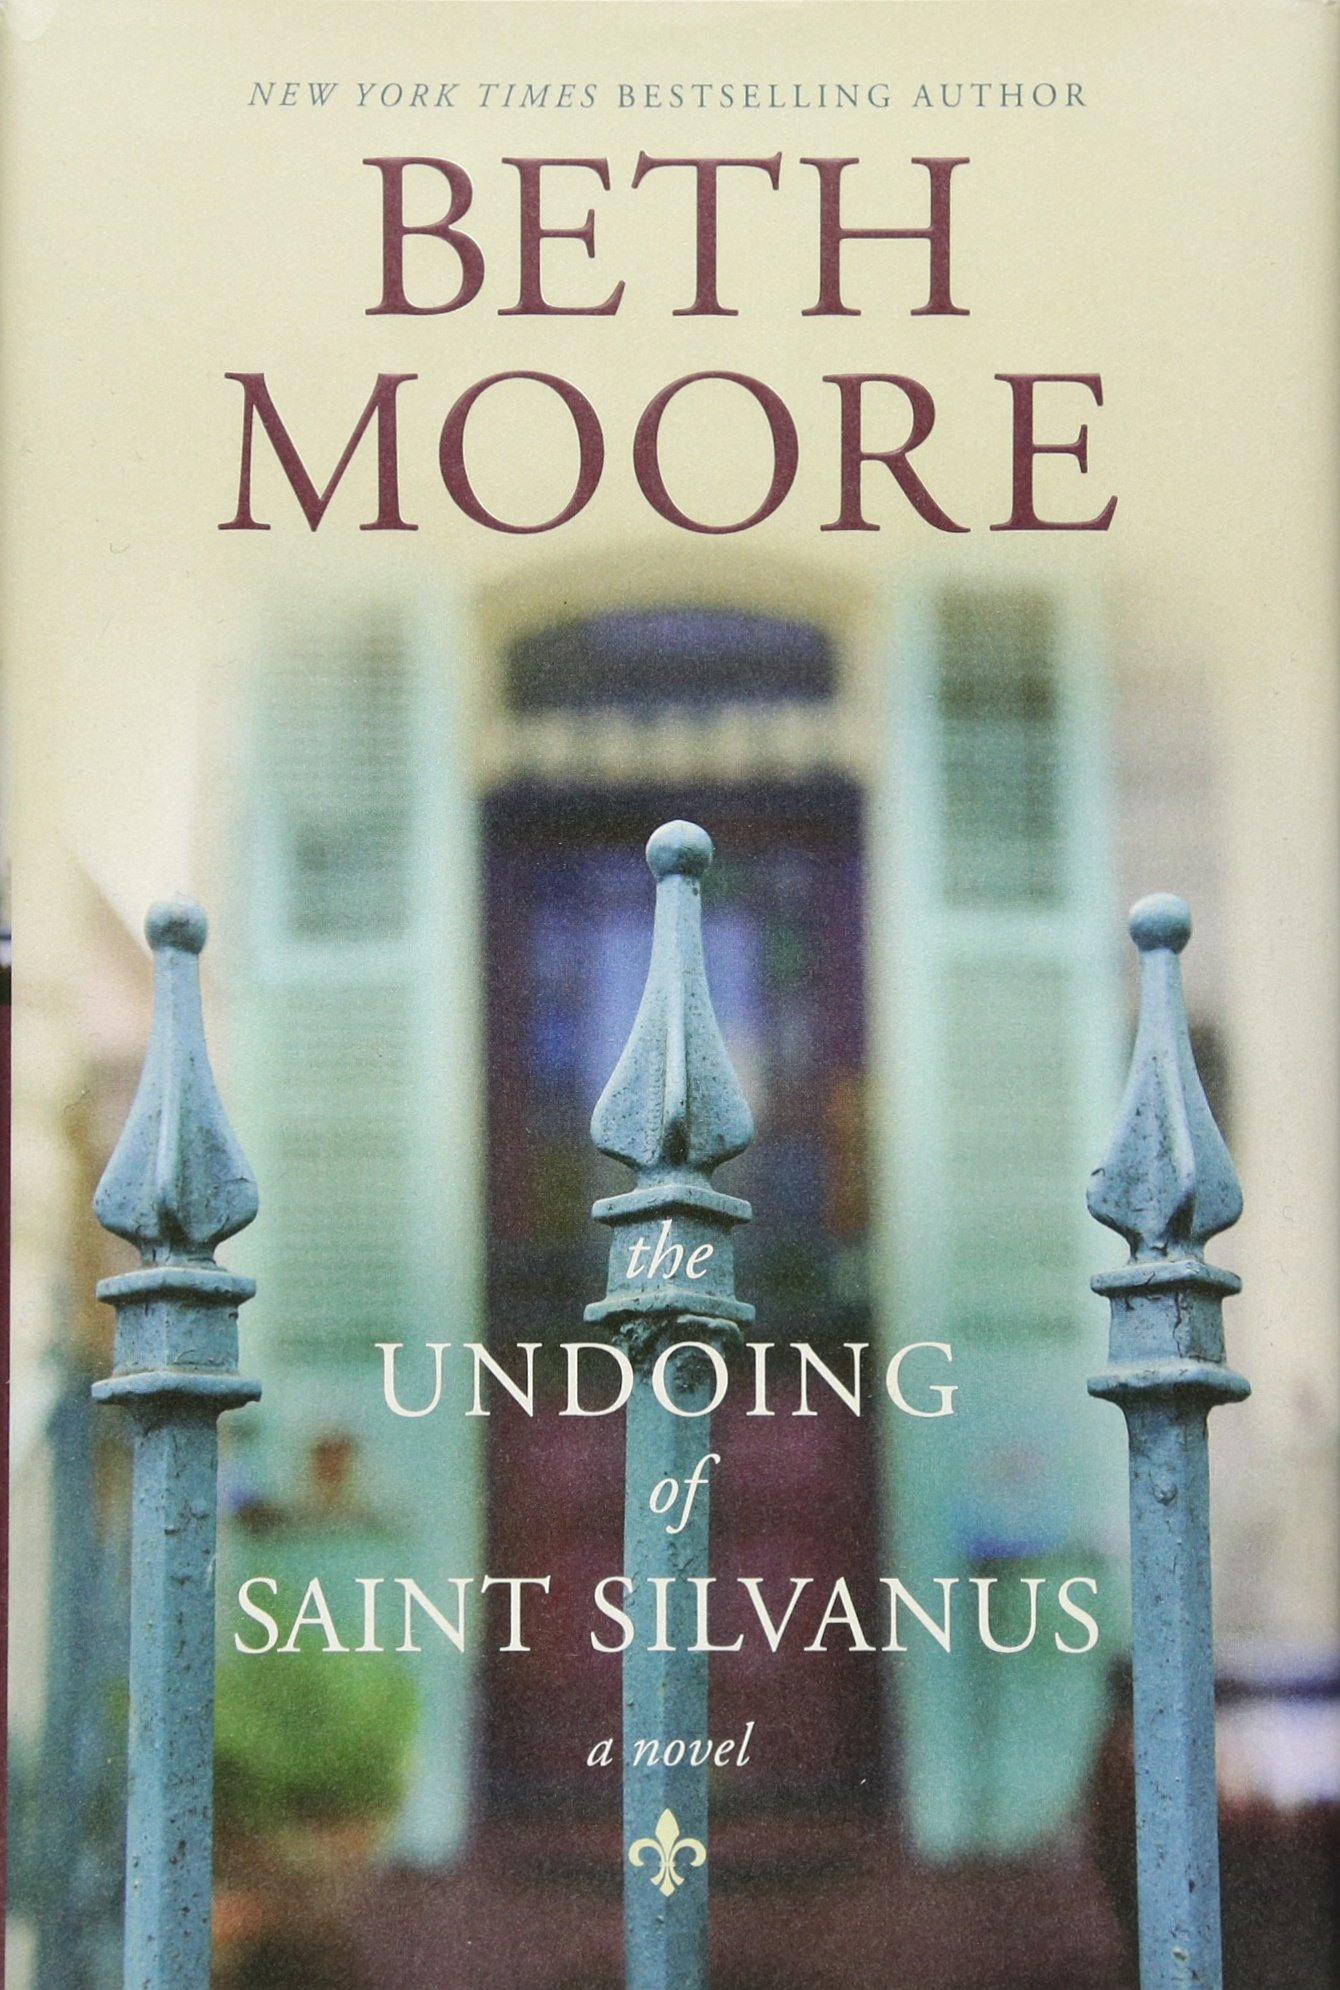 The Undoing of Saint Silvanus: Beth Moore: 9781496416476: Amazon.com: Books